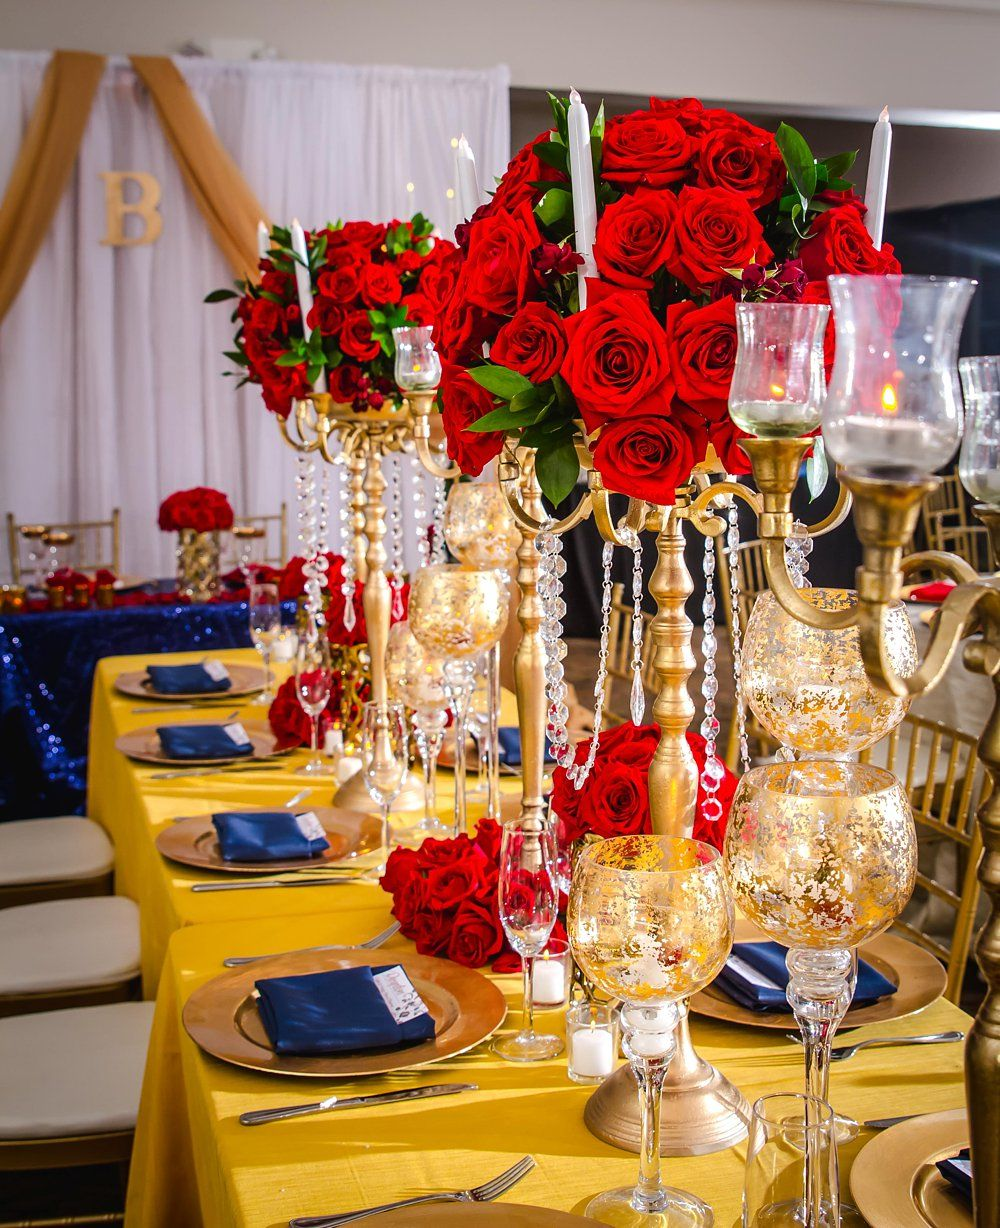 A Beauty and the Beast Inspired Wedding – aprincessinspired.com